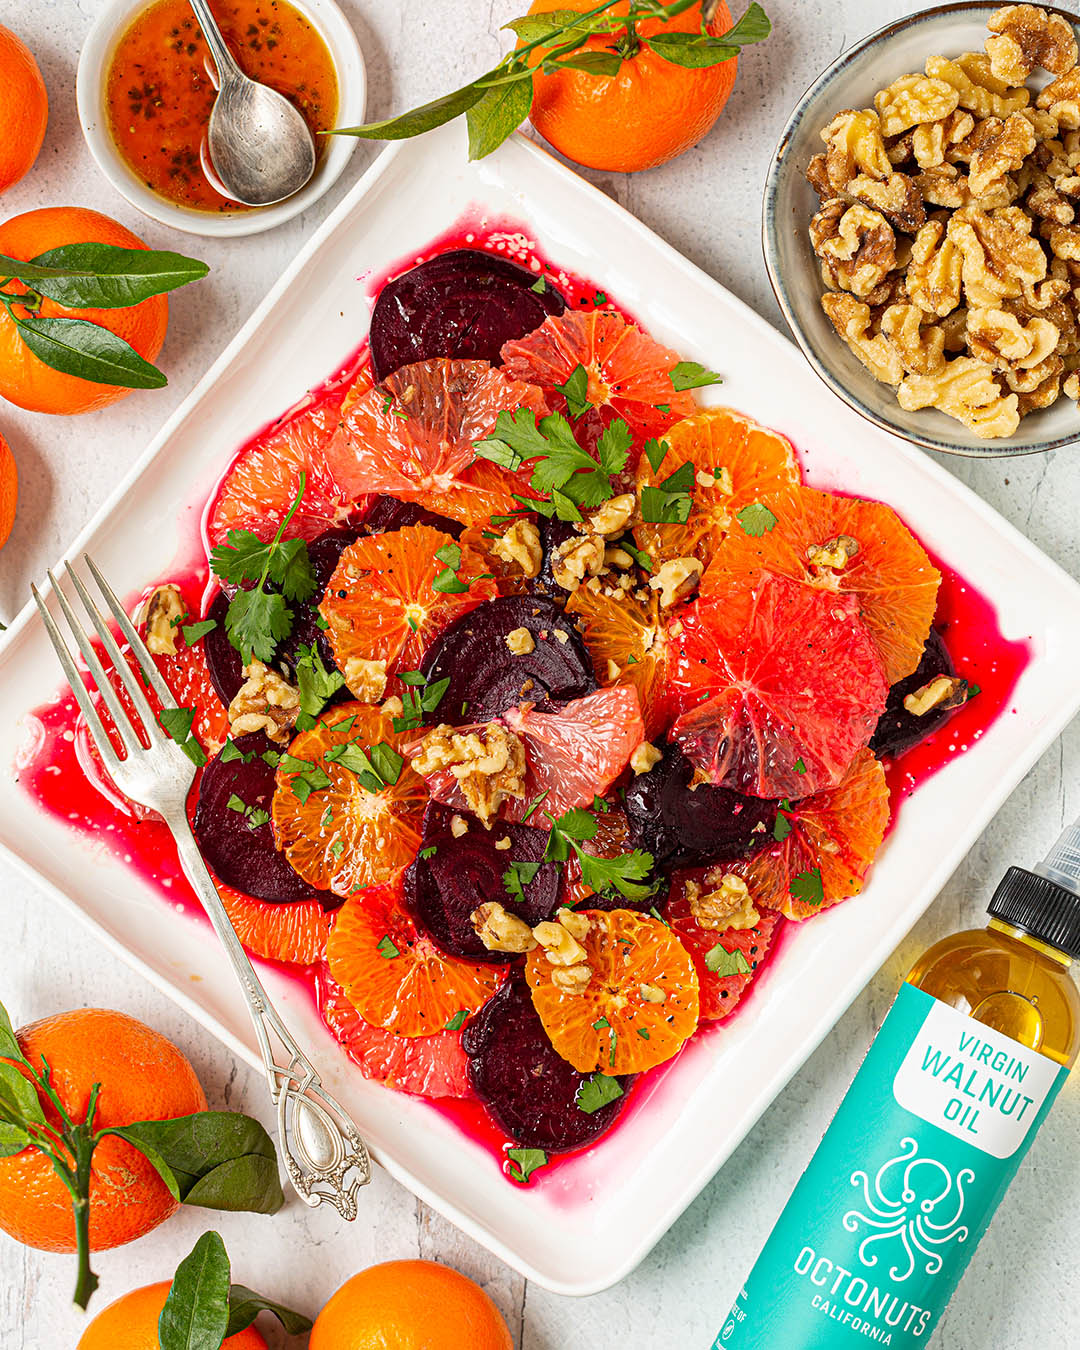 Citrus Beet Salad with Octonuts Walnut Oil Dressing